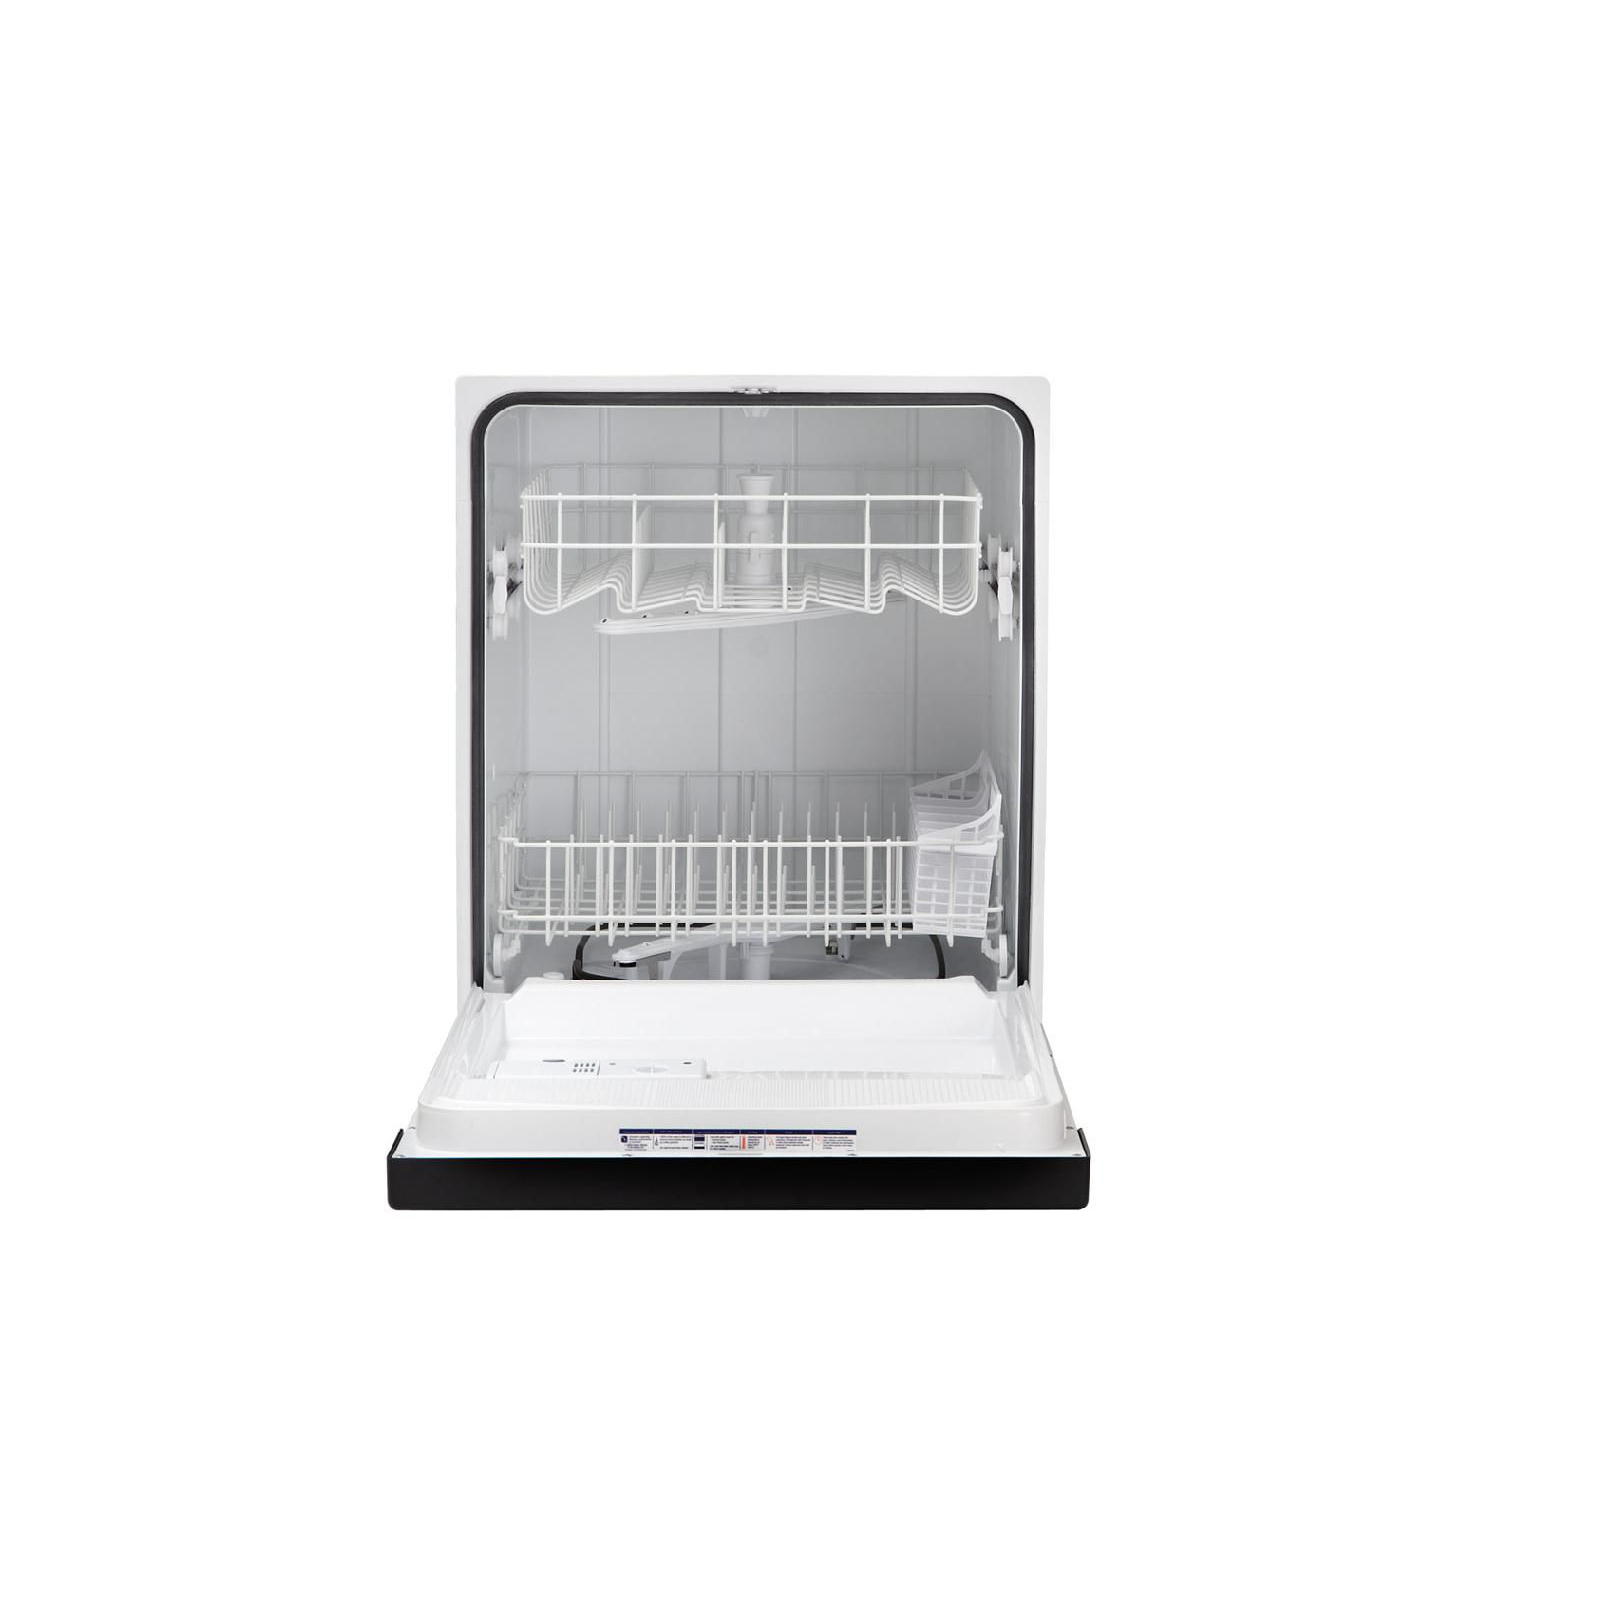 "Frigidaire FBD2400KS 24"" Built-In Dishwasher - Stainless Steel"